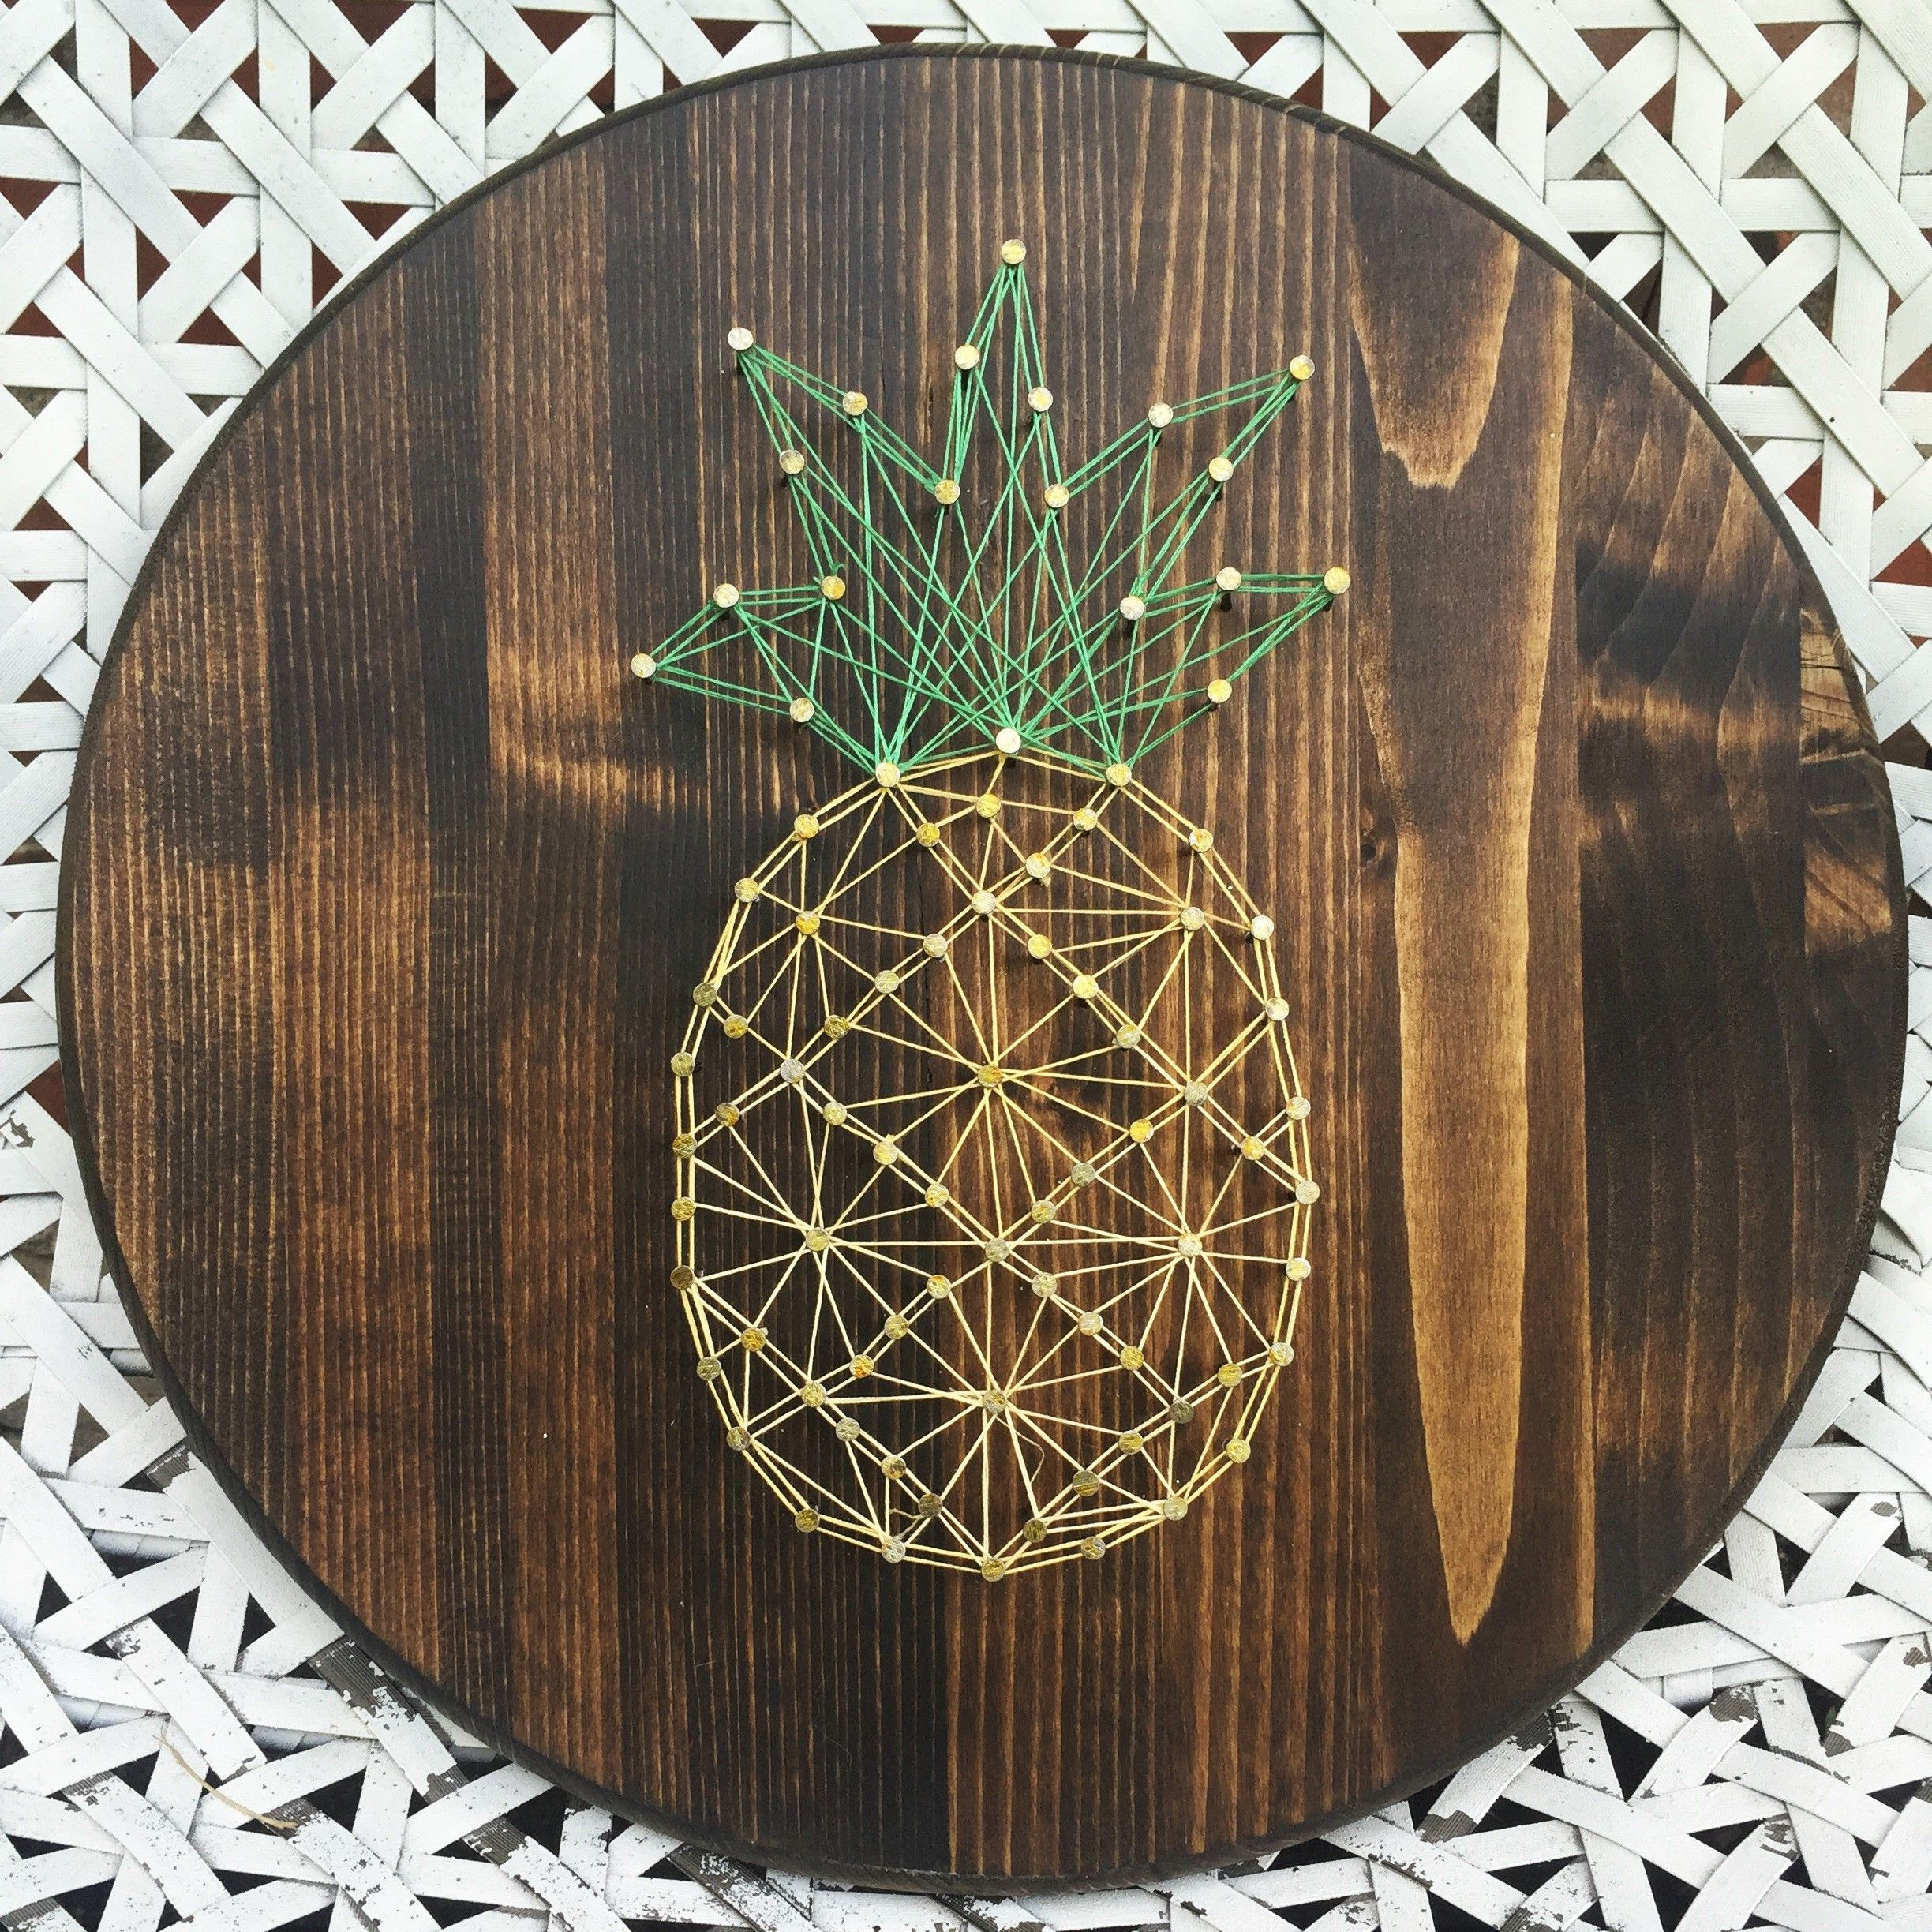 Pineapple string art DIY idea | Inspiration | Pinterest | String art ...